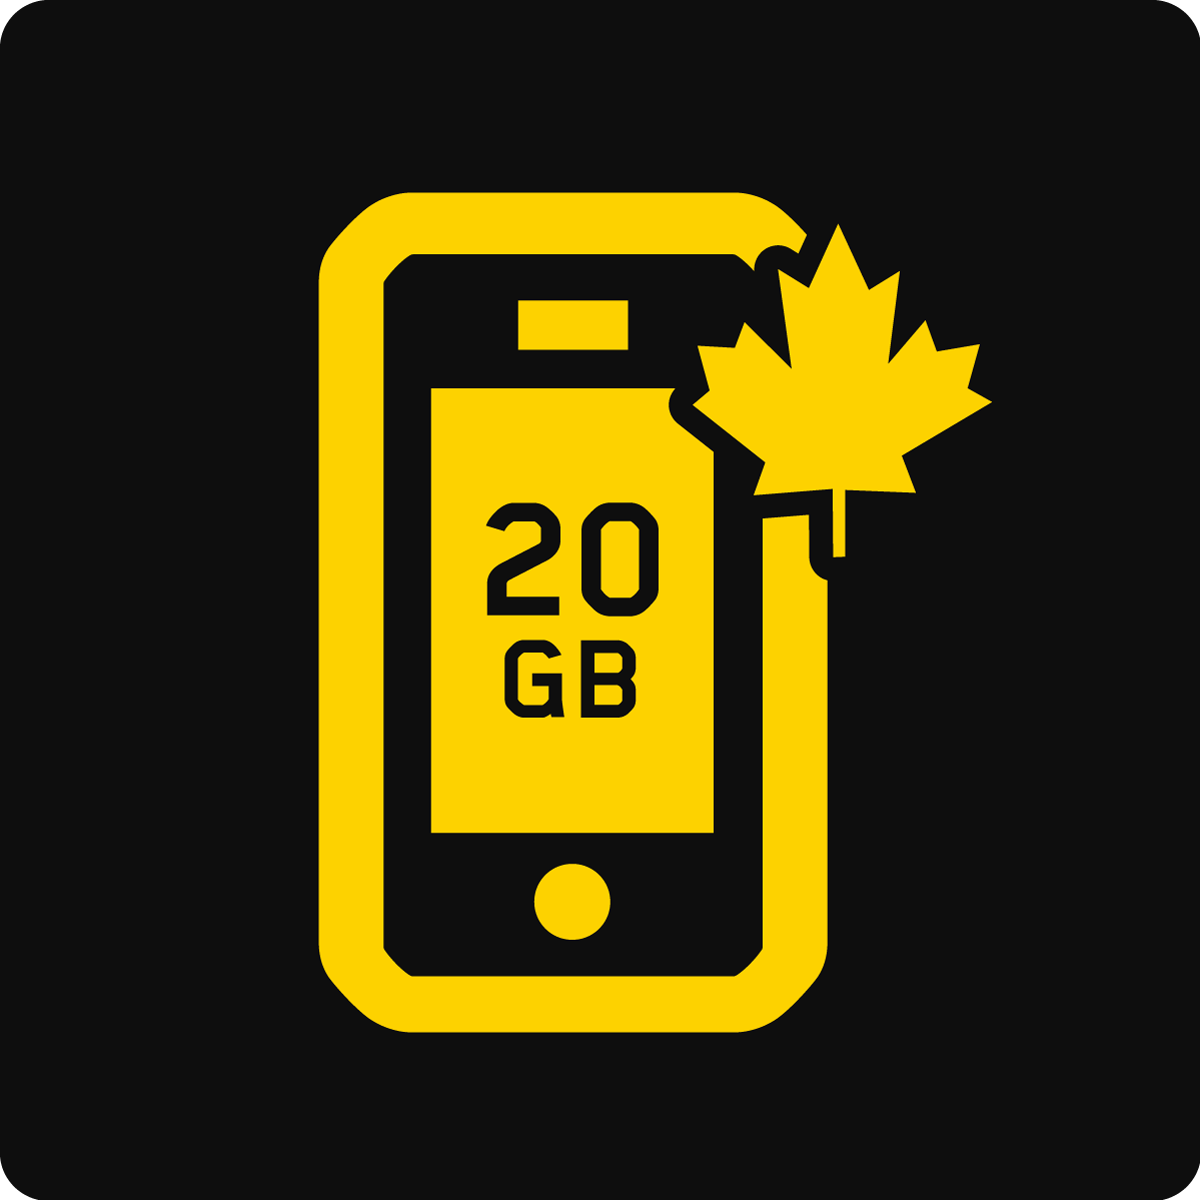 Canada 20 GB Business Mobile plan